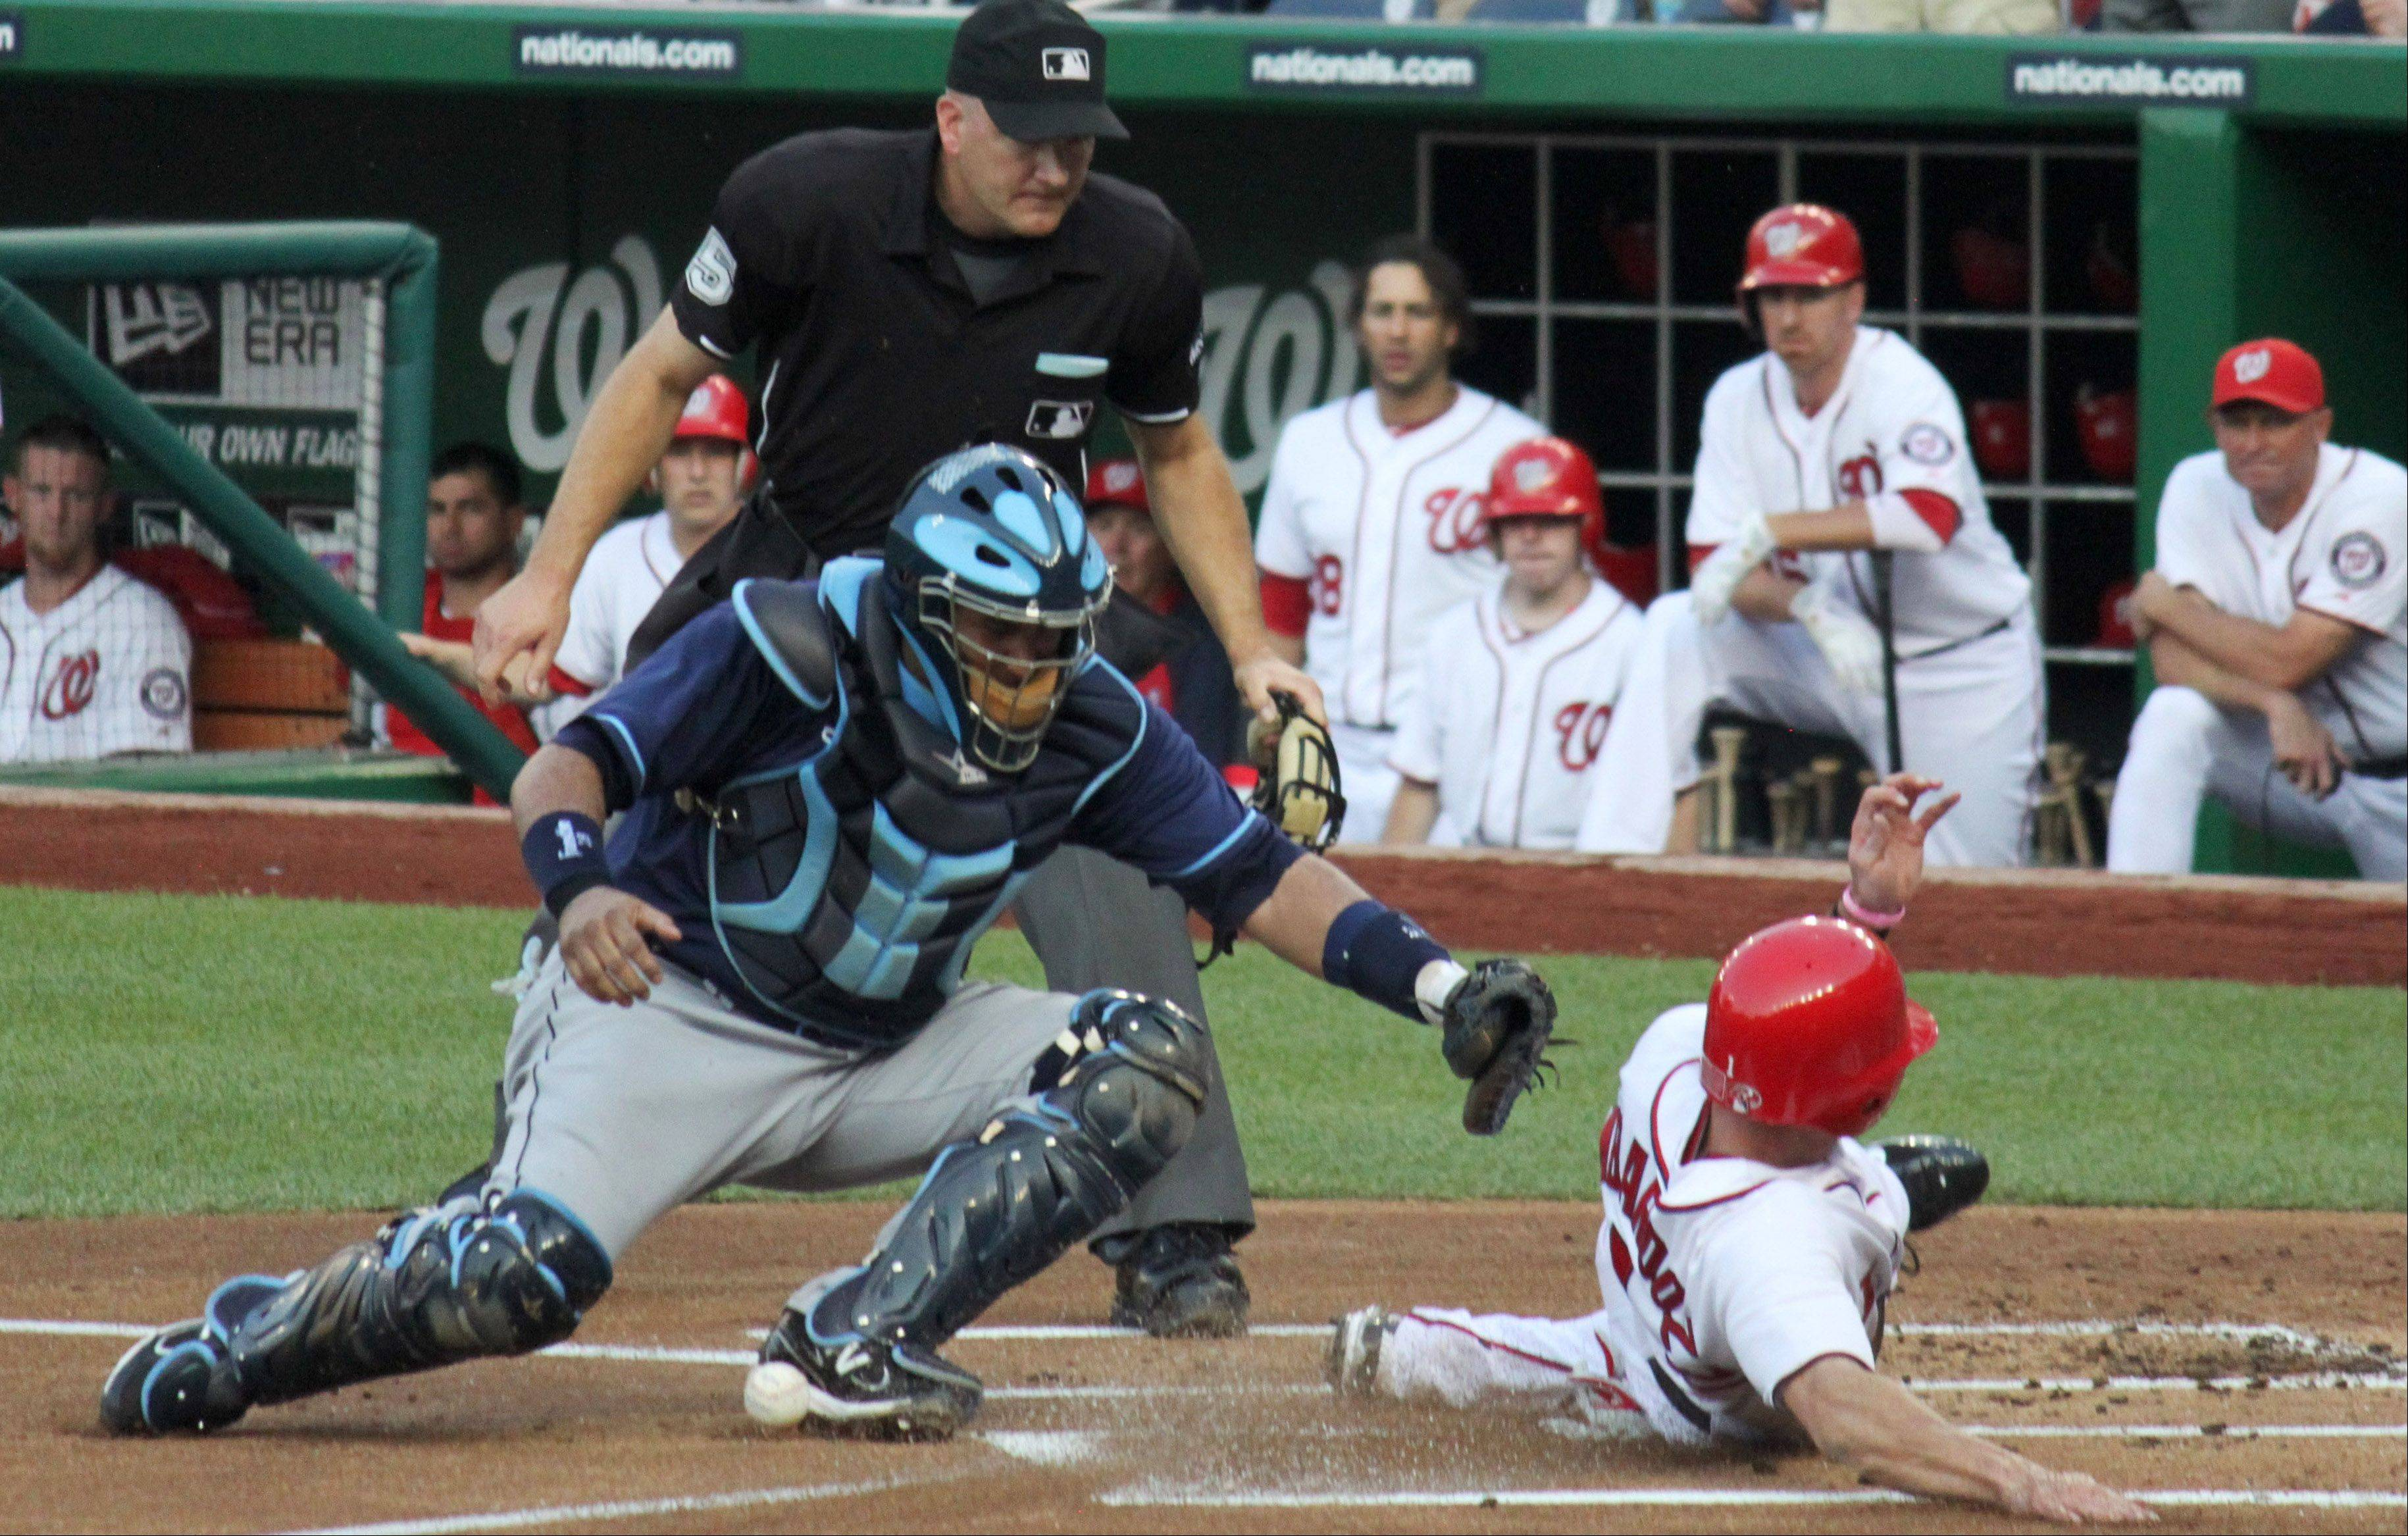 Steve Lombardozzi slides home safely as the ball lays at the feet of Tampa Bay catcher Jose Molina during a baseball game between the Washington National and Tampa Bay Rays in Washington, D.C. on June 20.